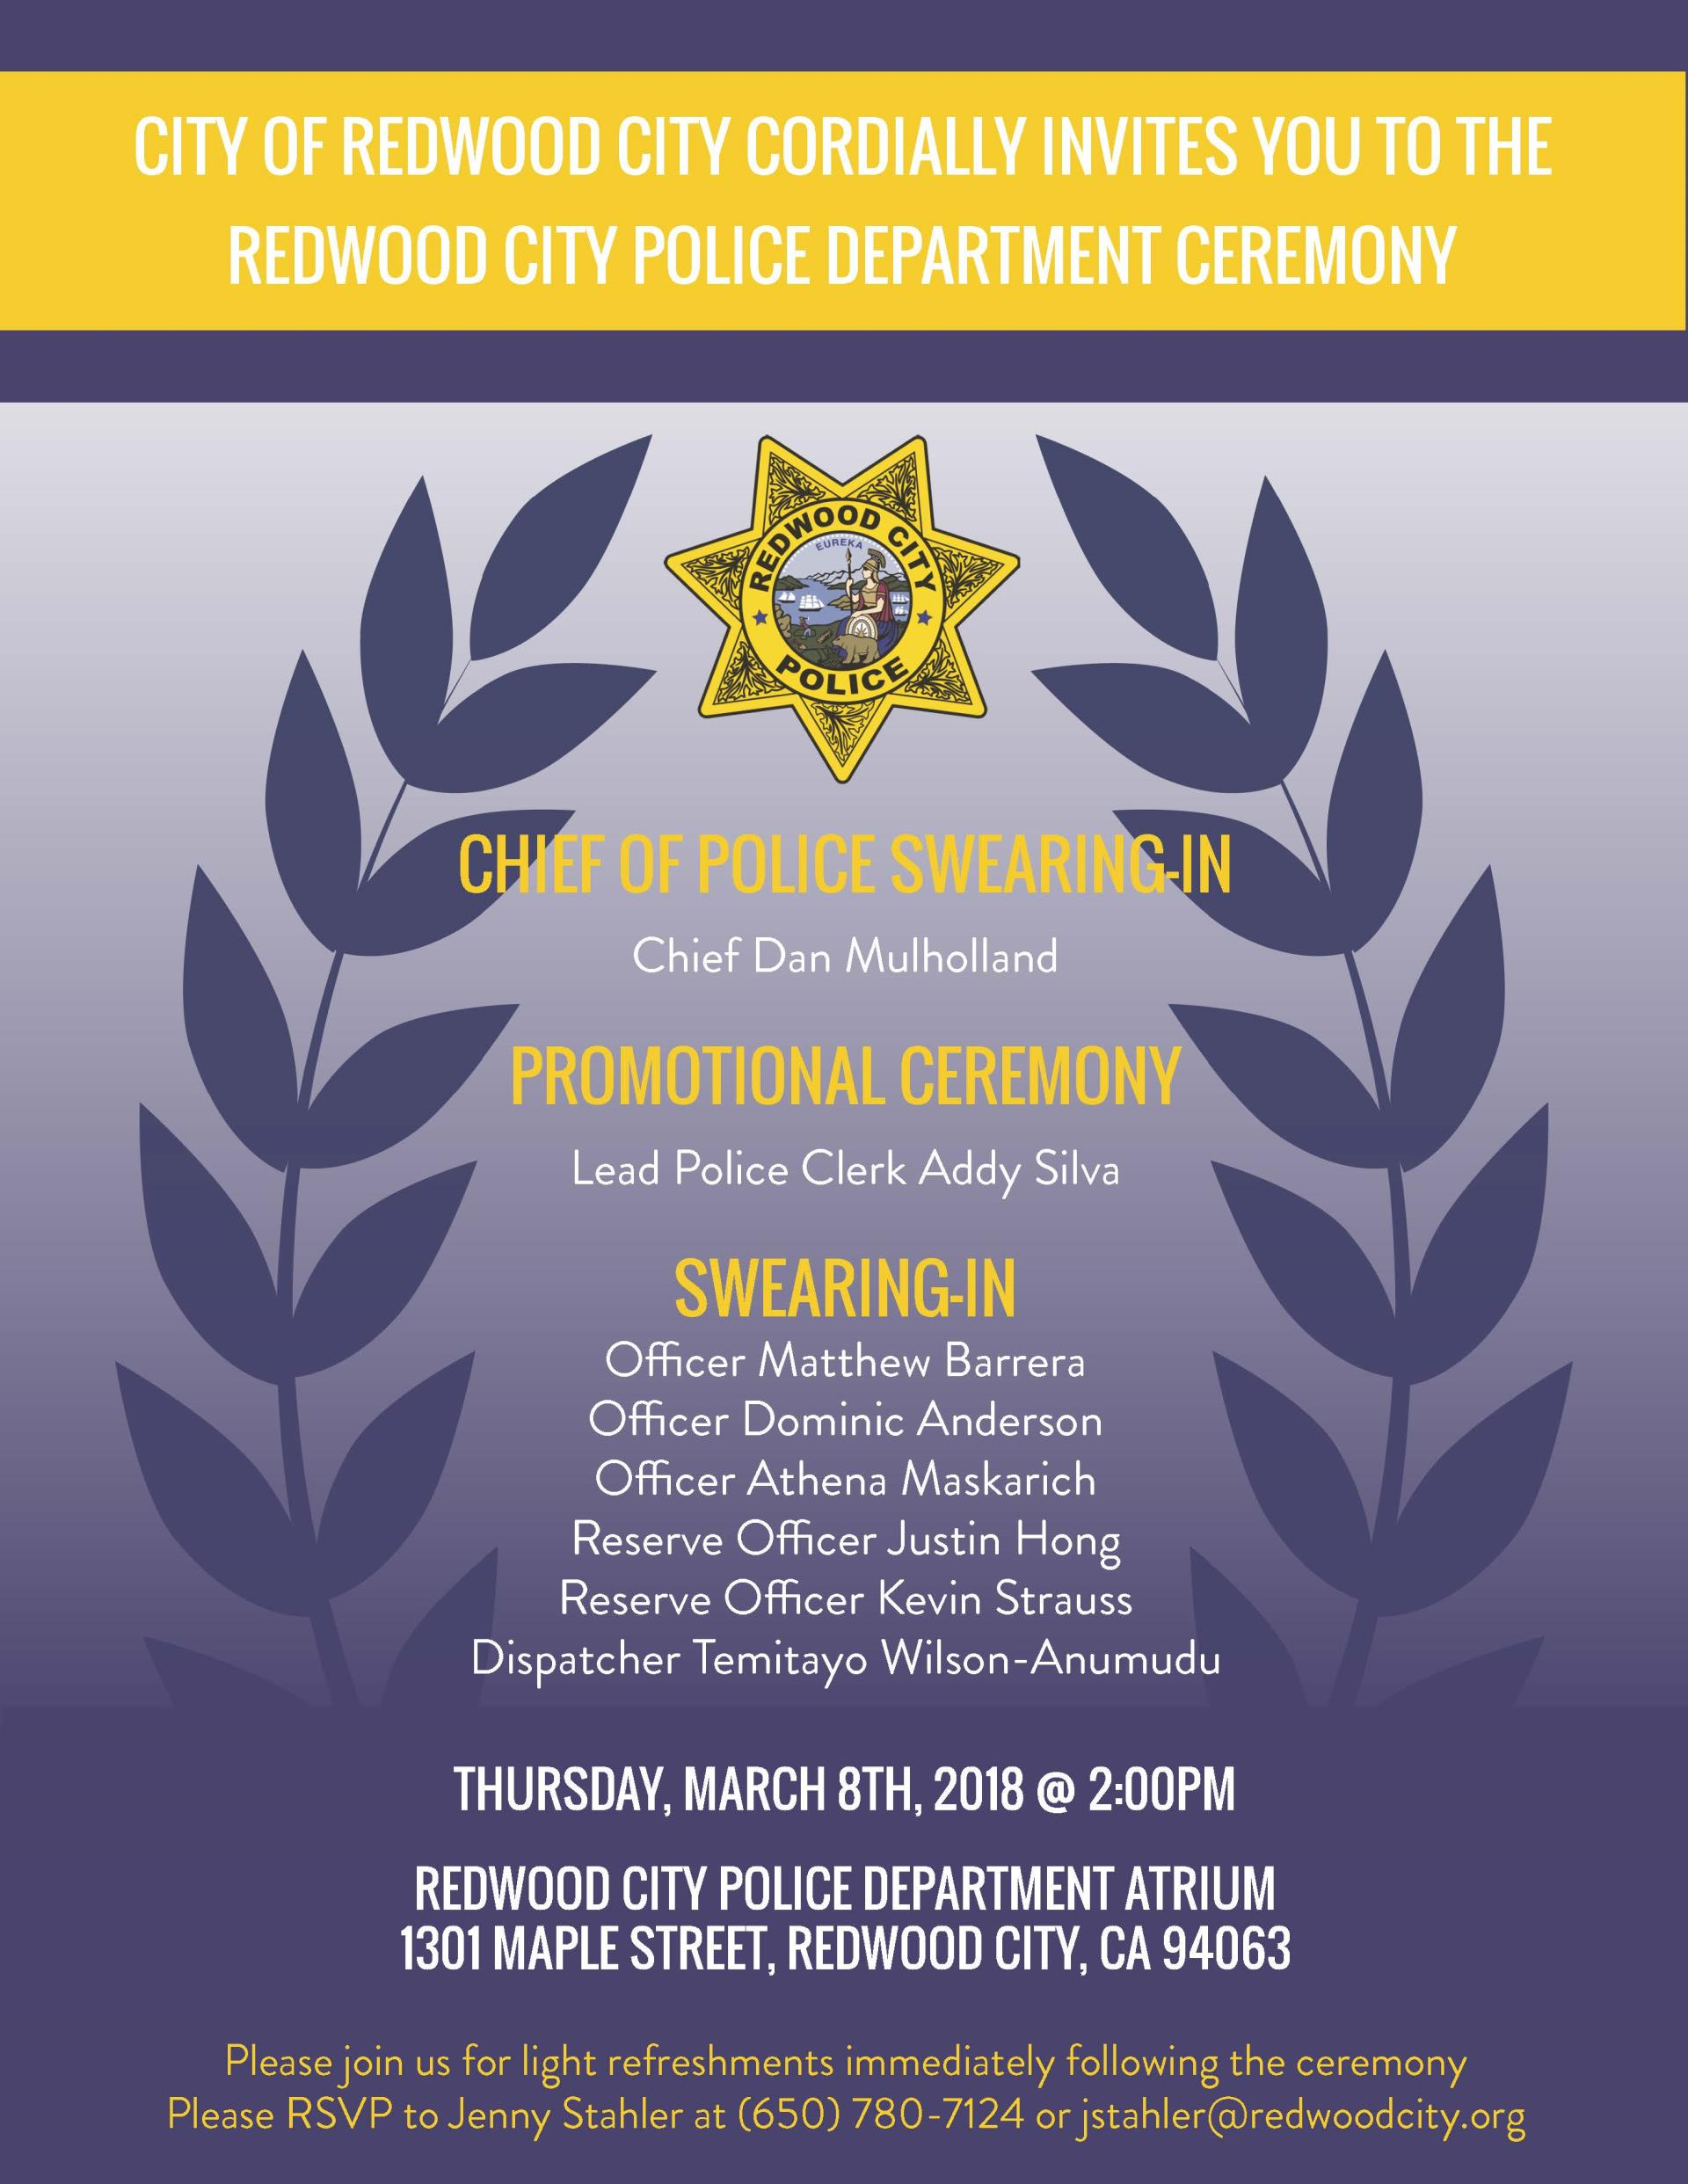 RCPD Swearing In Ceremony 3.8.18